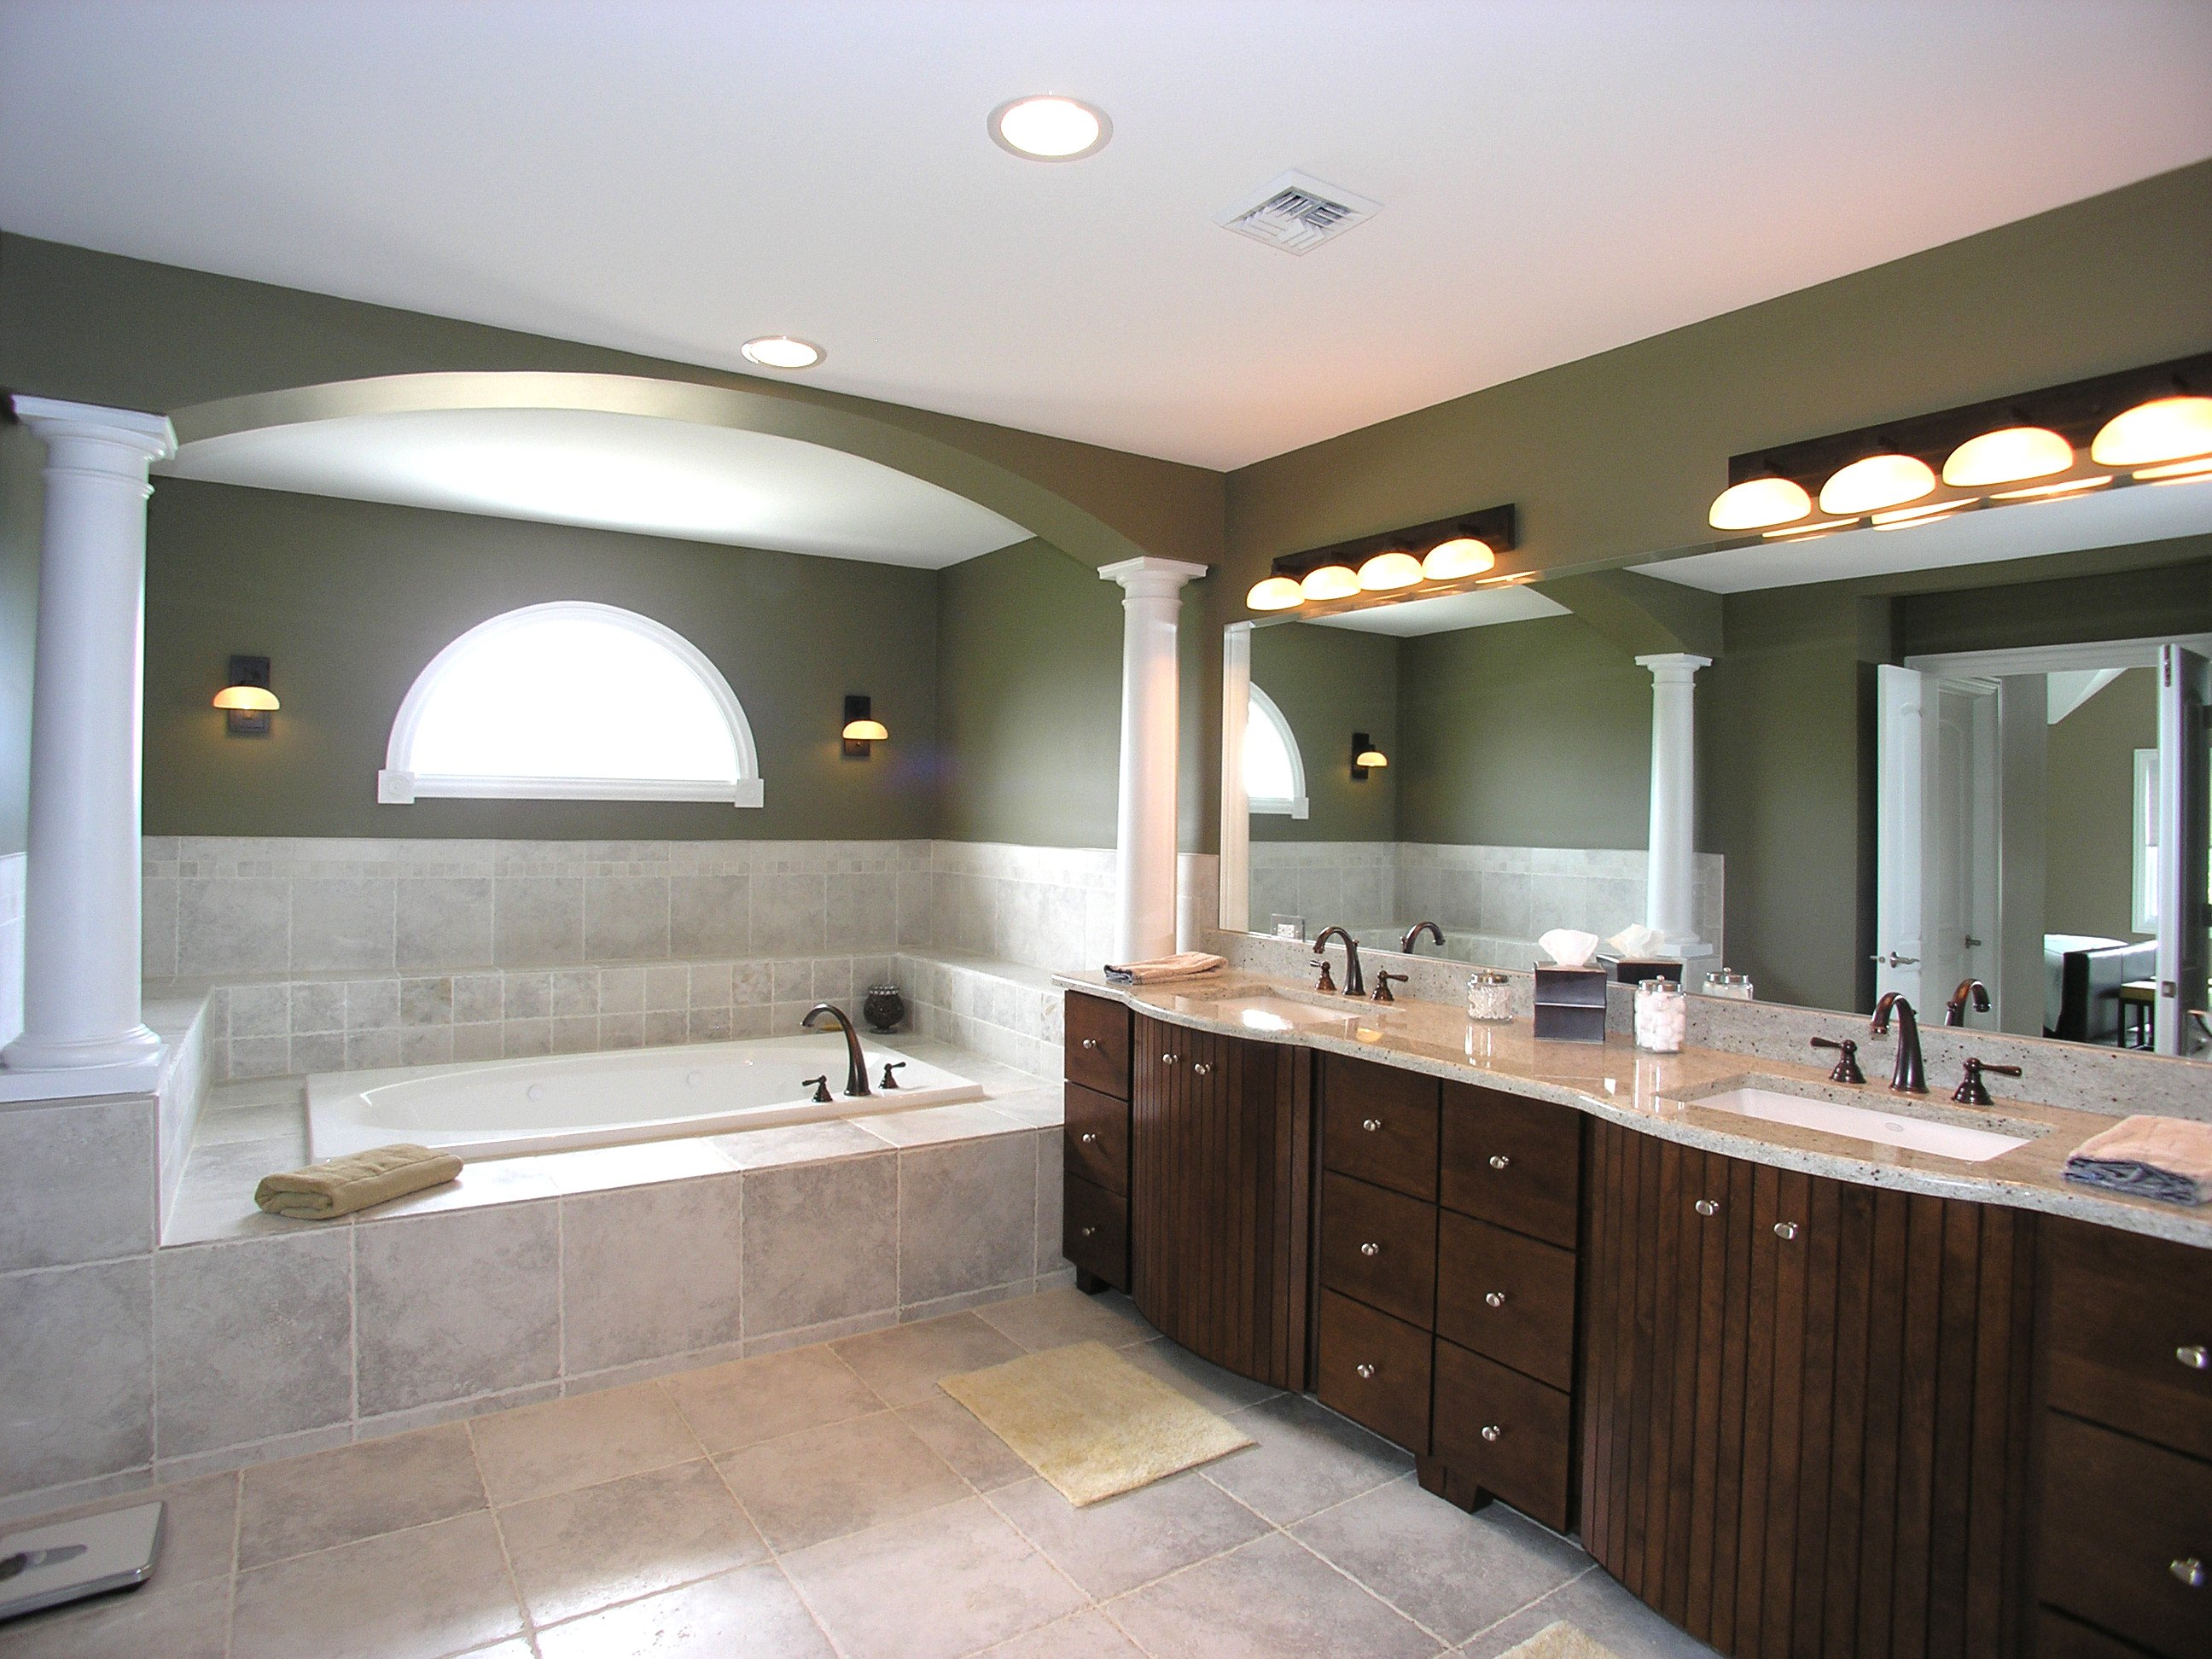 Stunning Small Master Bathroom Ideas 2592 x 1944 · 844 kB · jpeg